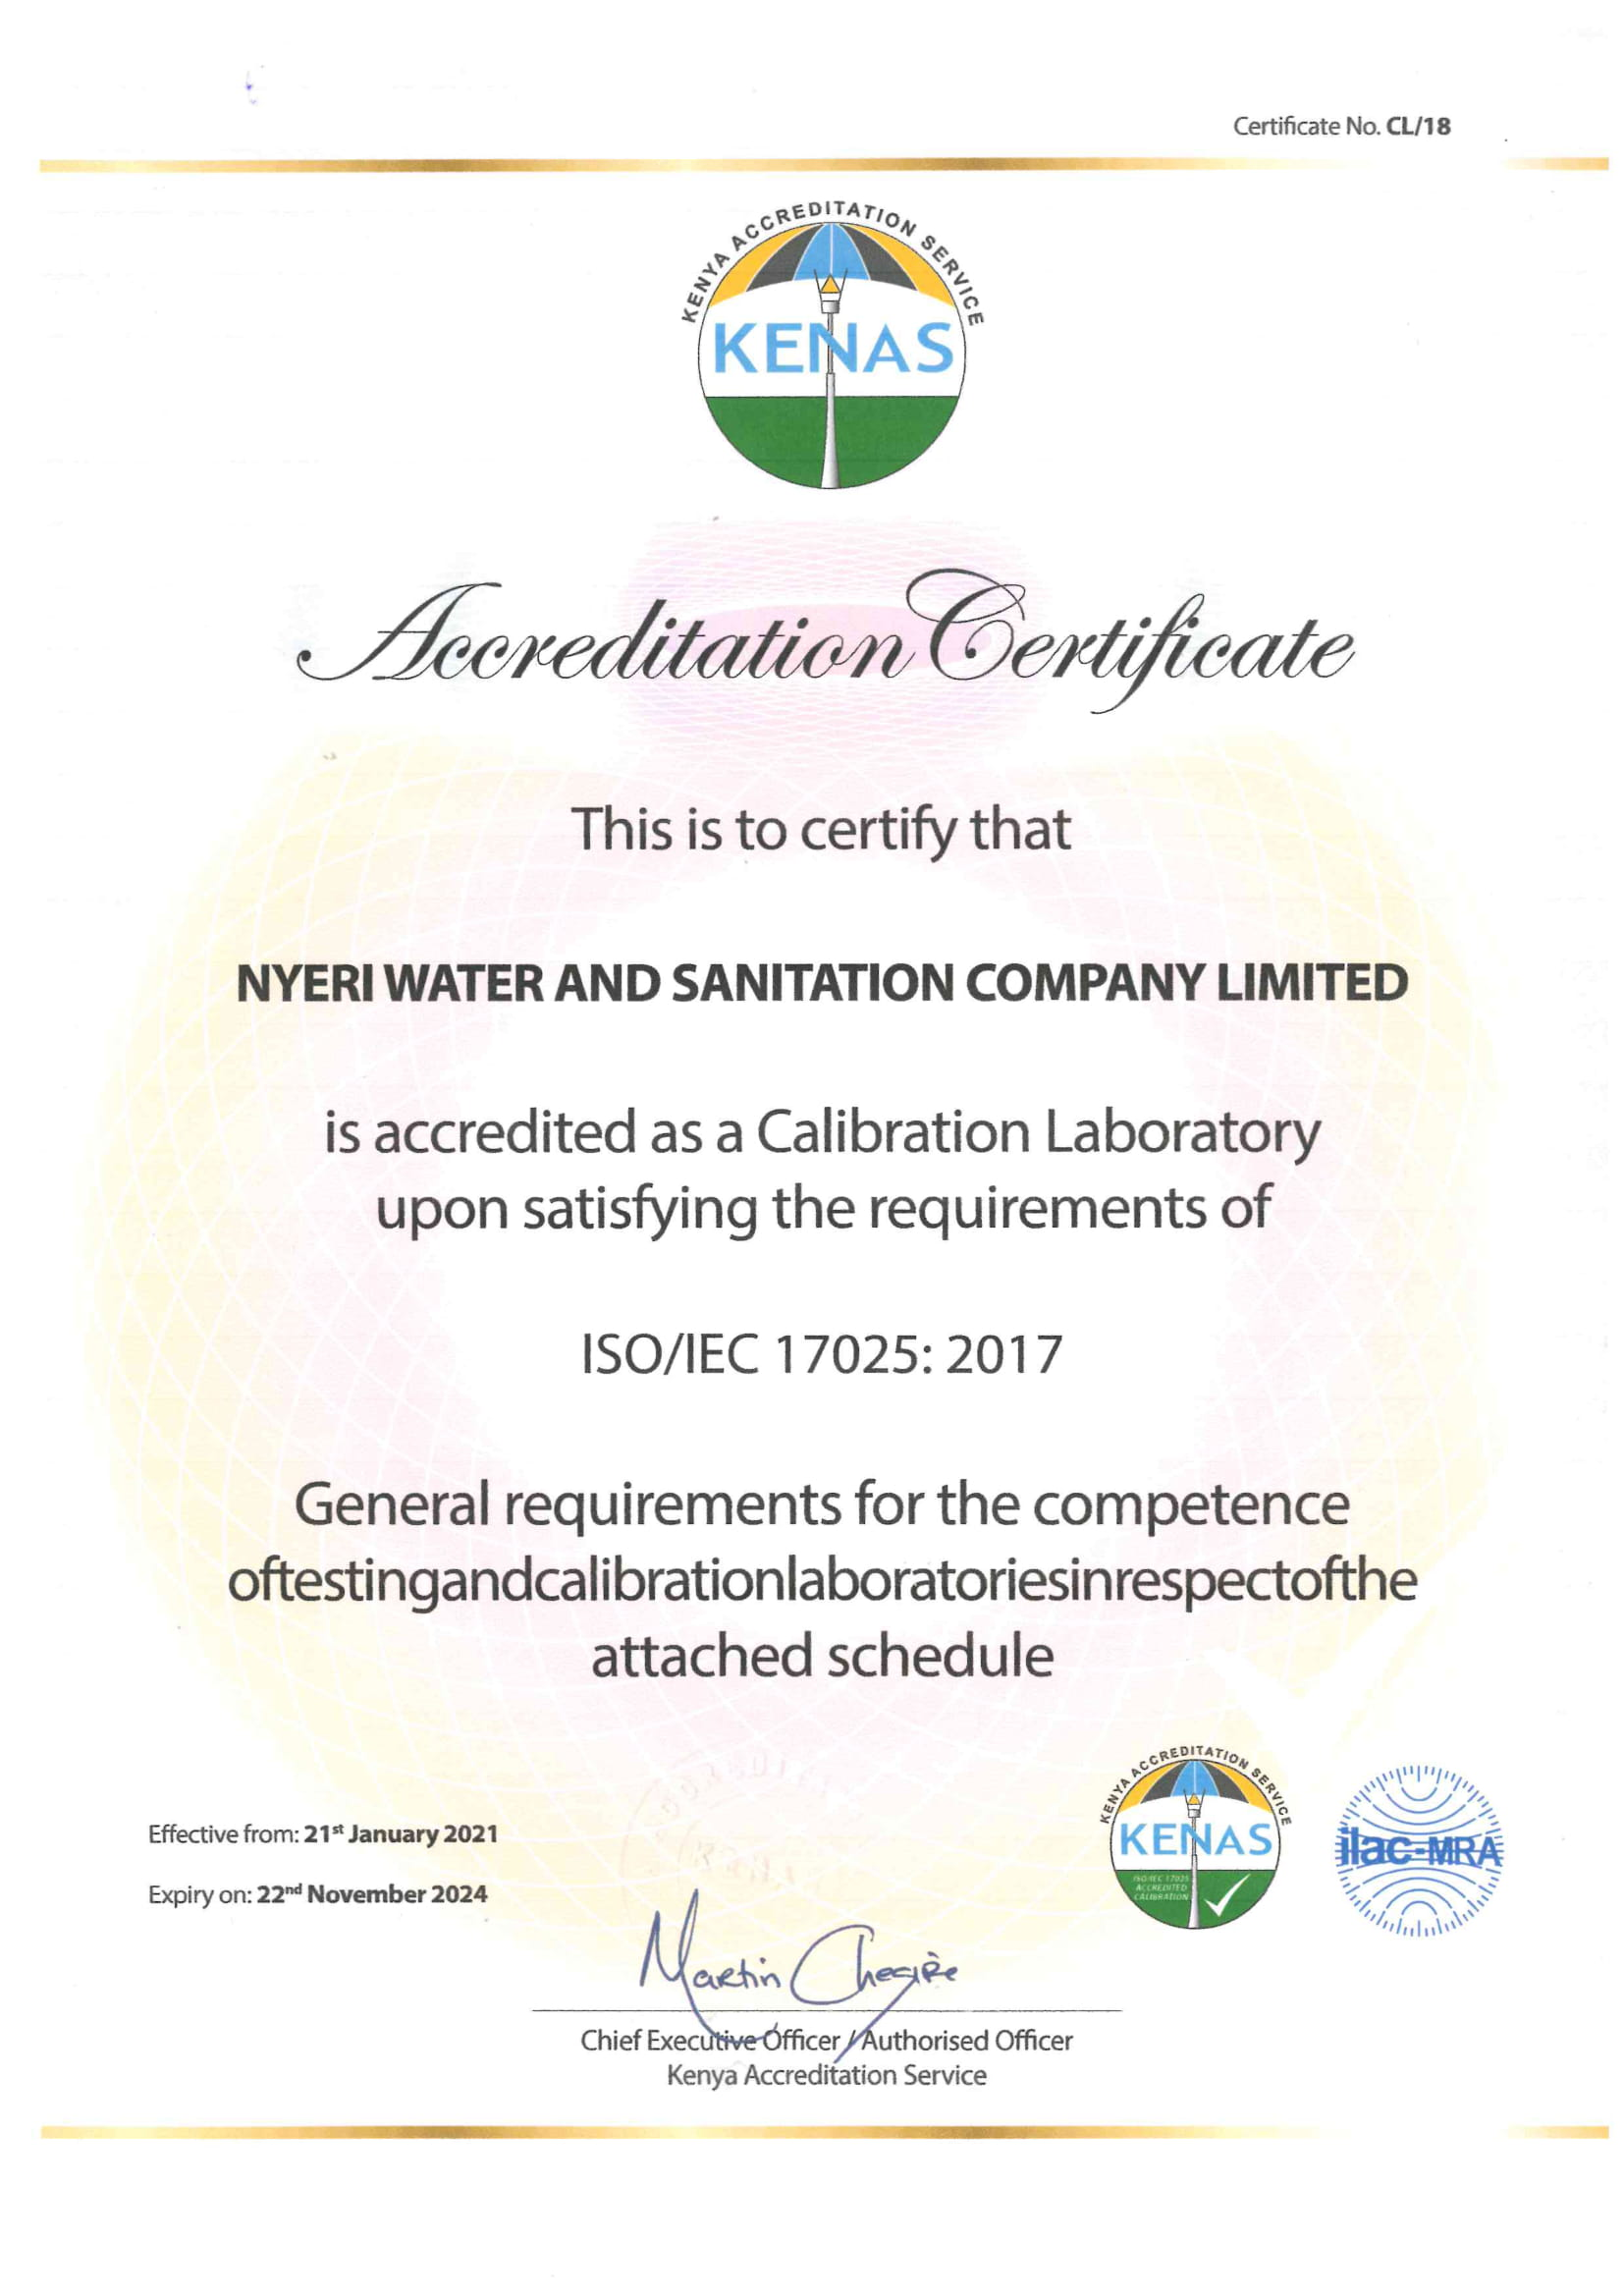 Testing and calibration laboratories ISO/IEC 17025:2017 Accreditation